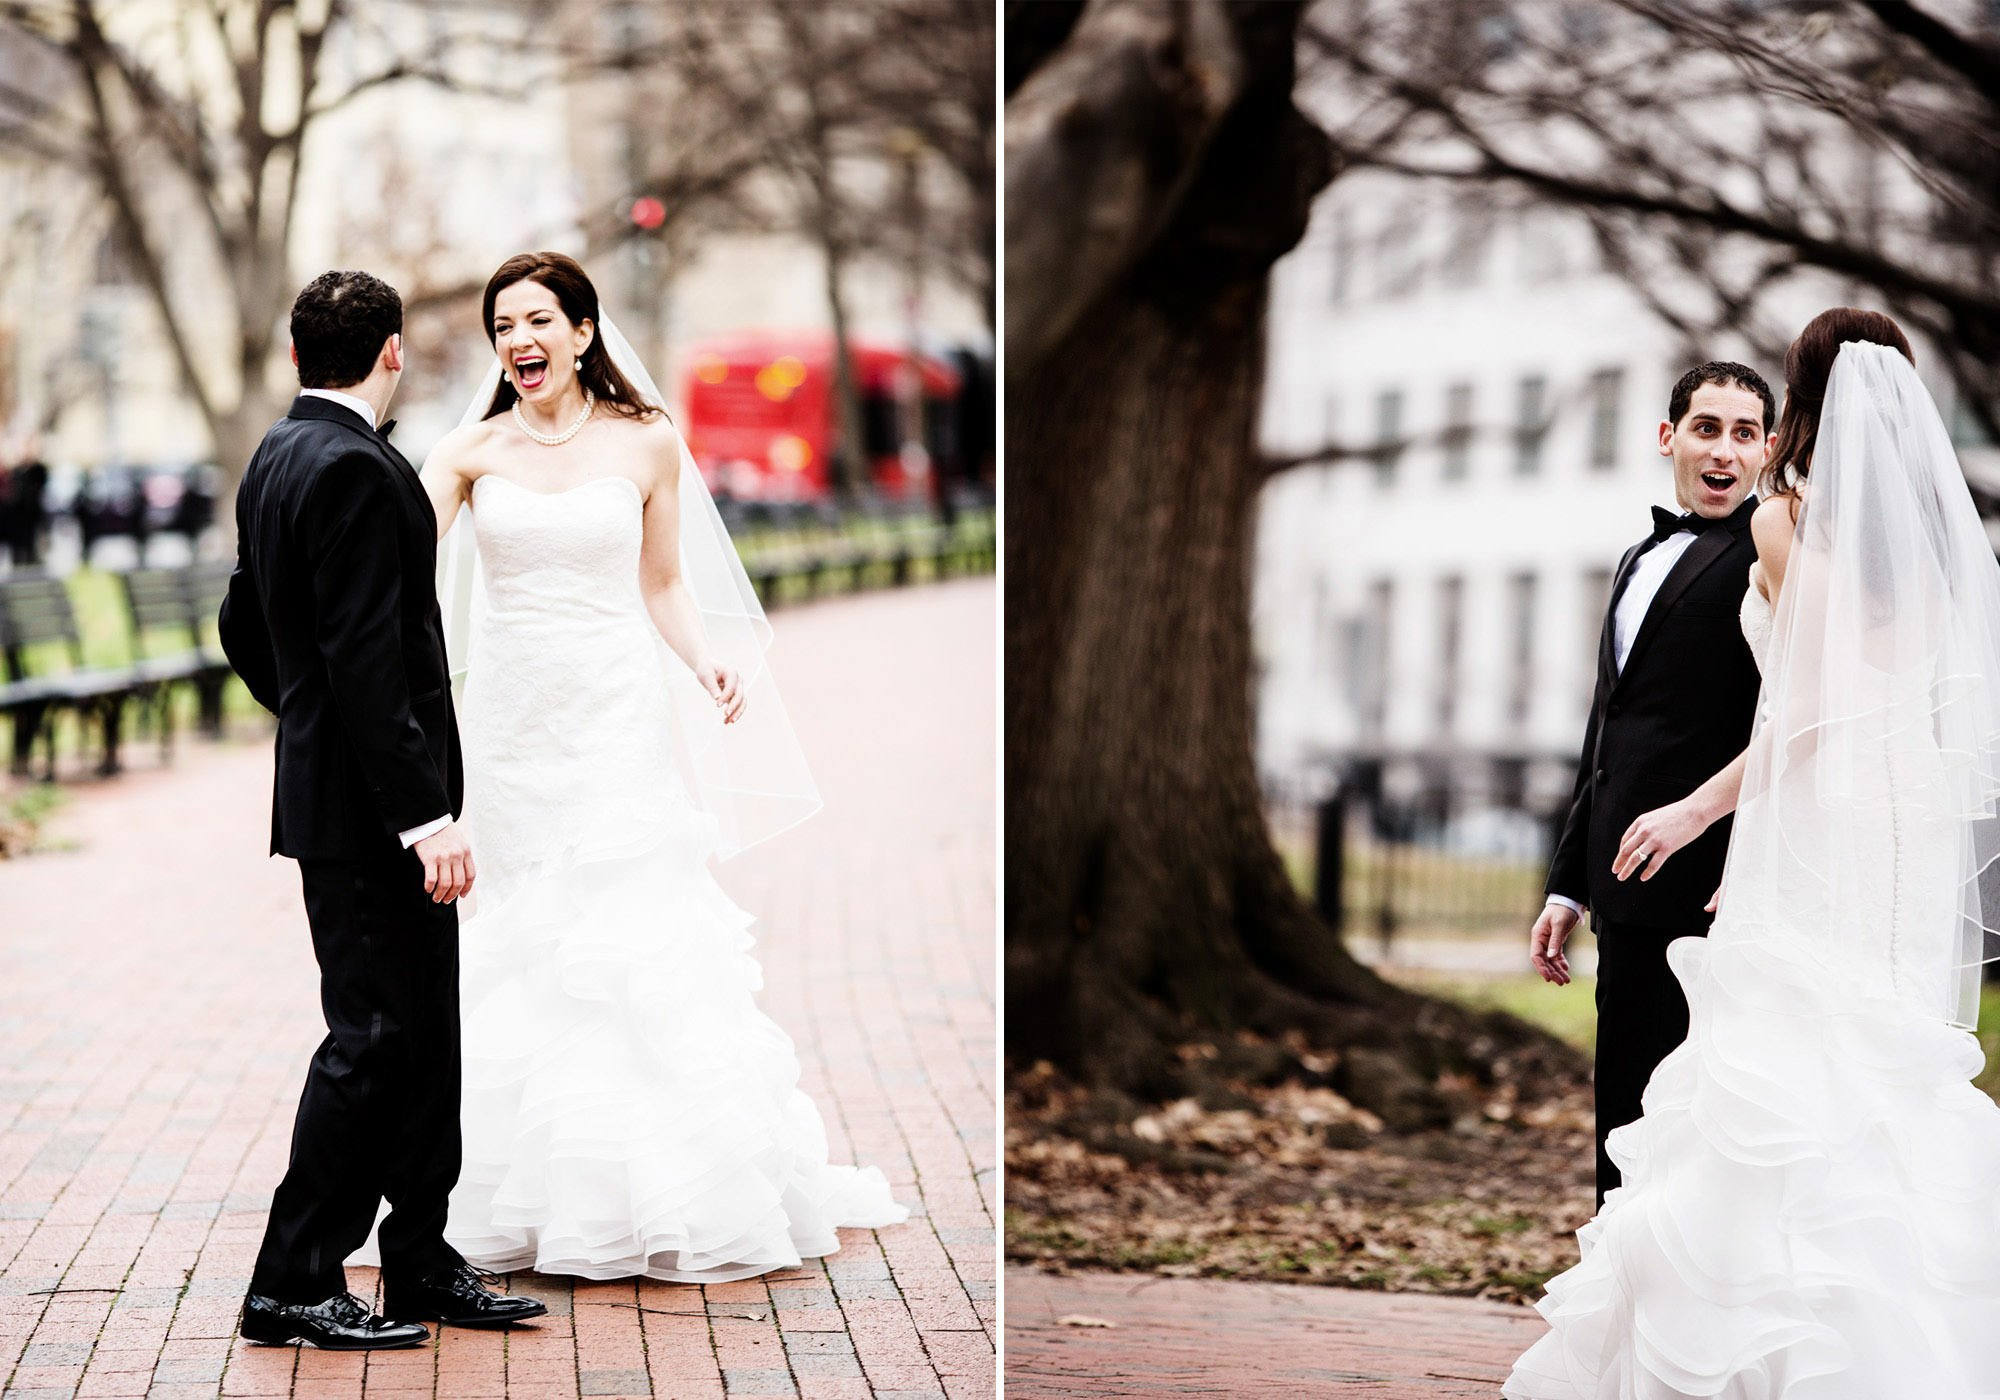 The bride and groom share their first look in Lafayette Park in Washington, DC.